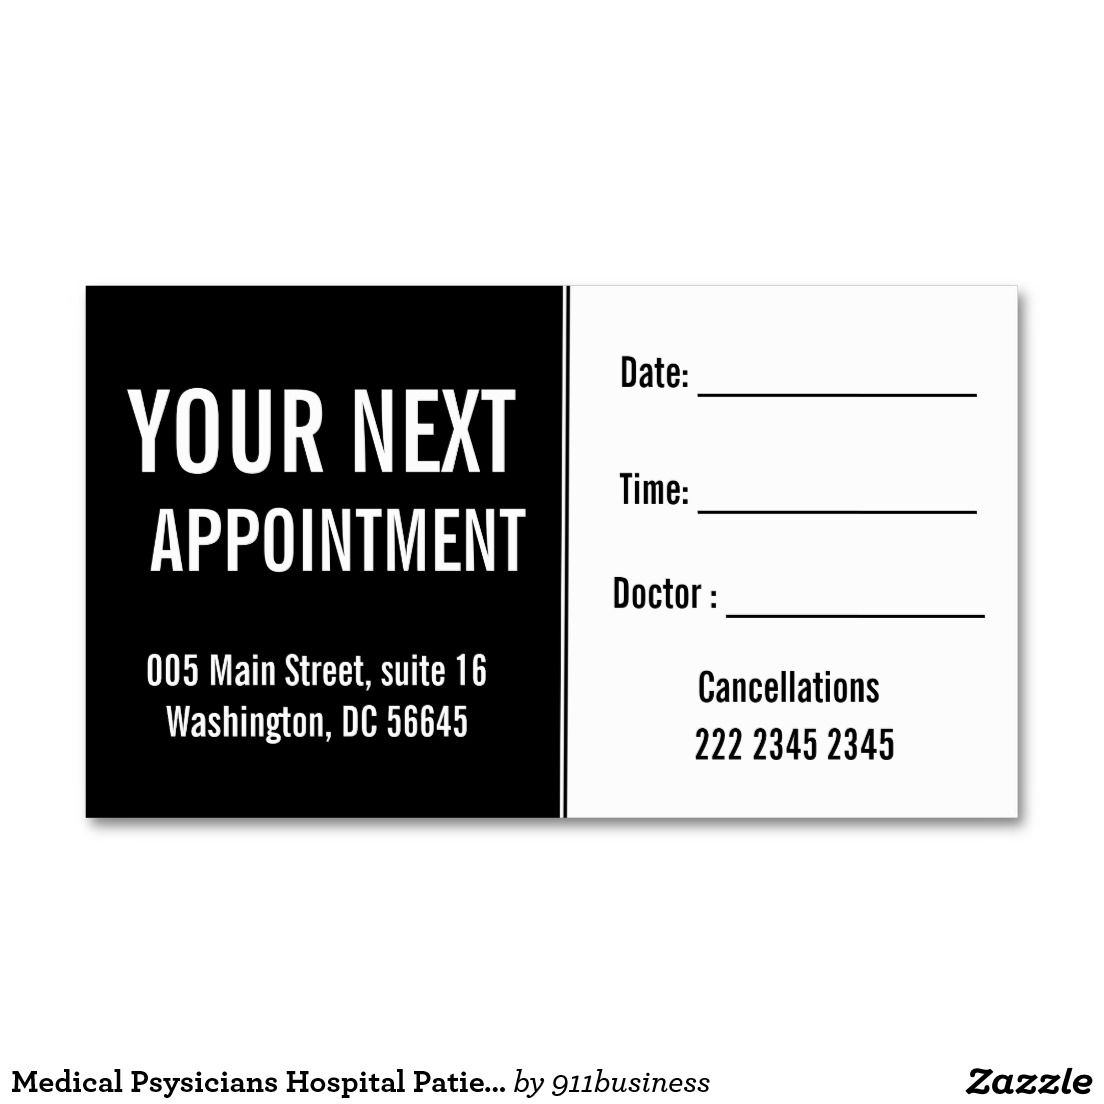 Medical Psysicians Hospital Patient Appointment Zazzle Com Custom Business Cards Modern Business Cards Standard Business Card Size